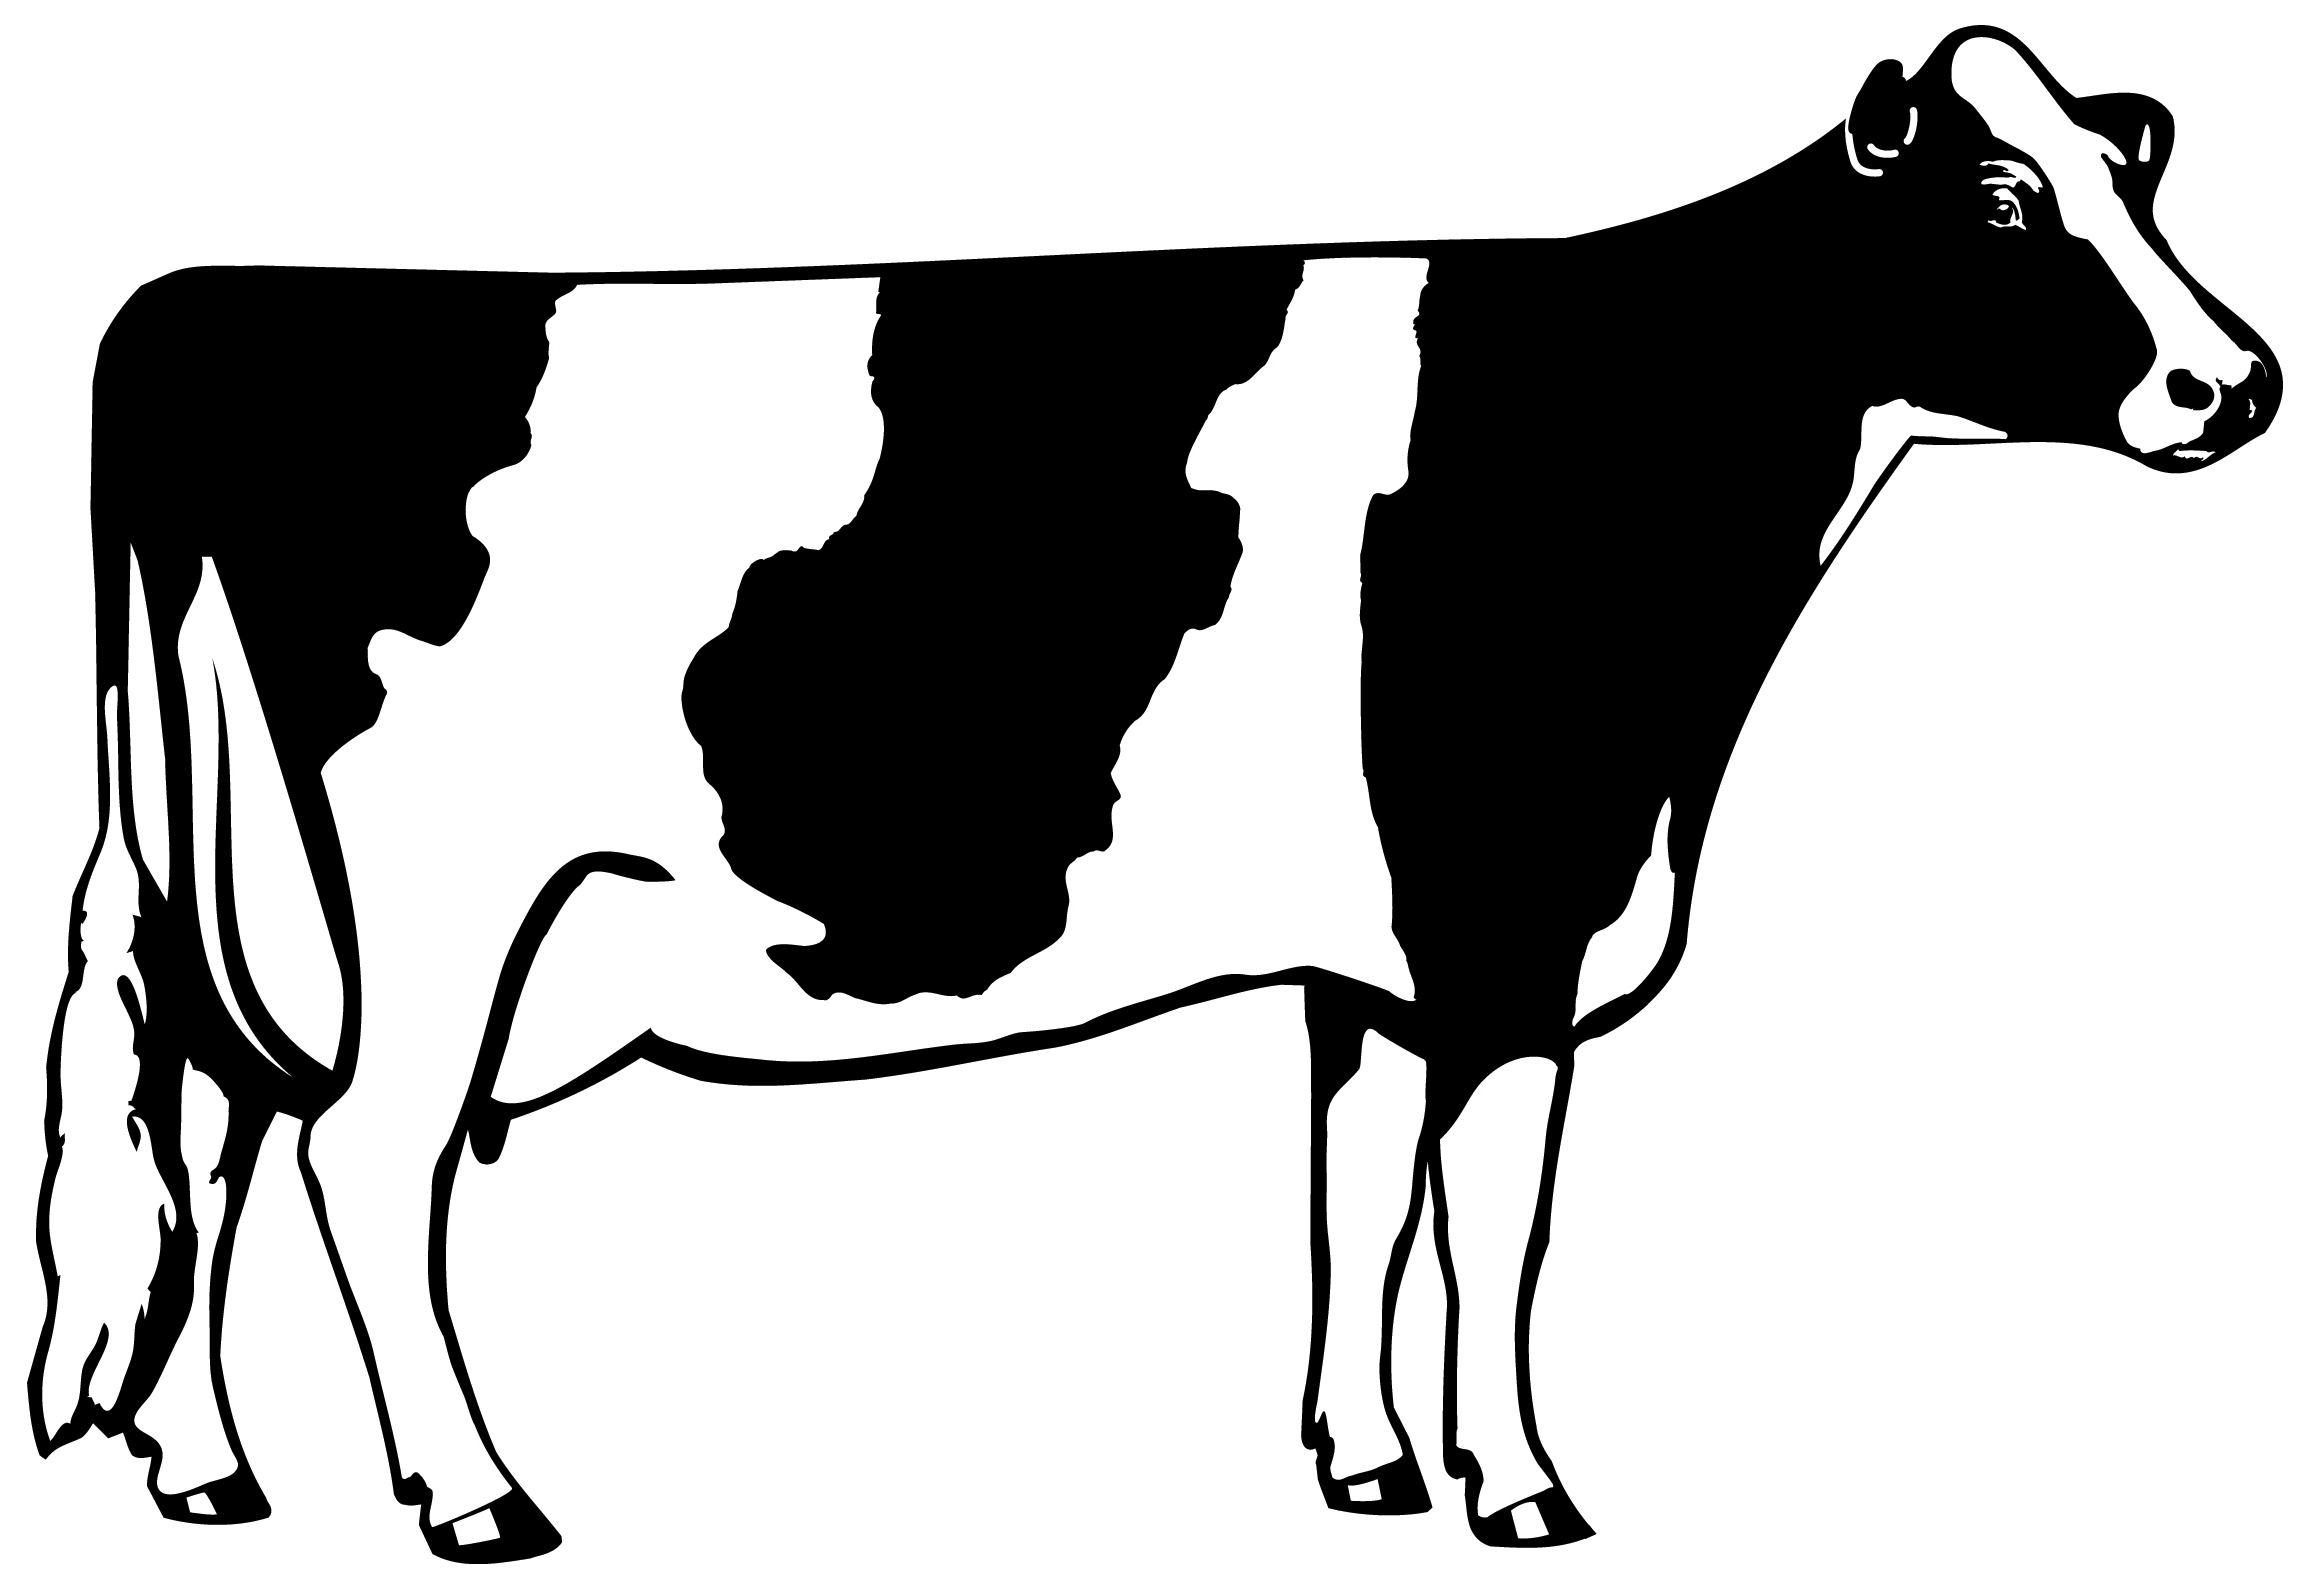 Cow Head Clipart Black And White | Clipart Panda - Free ...